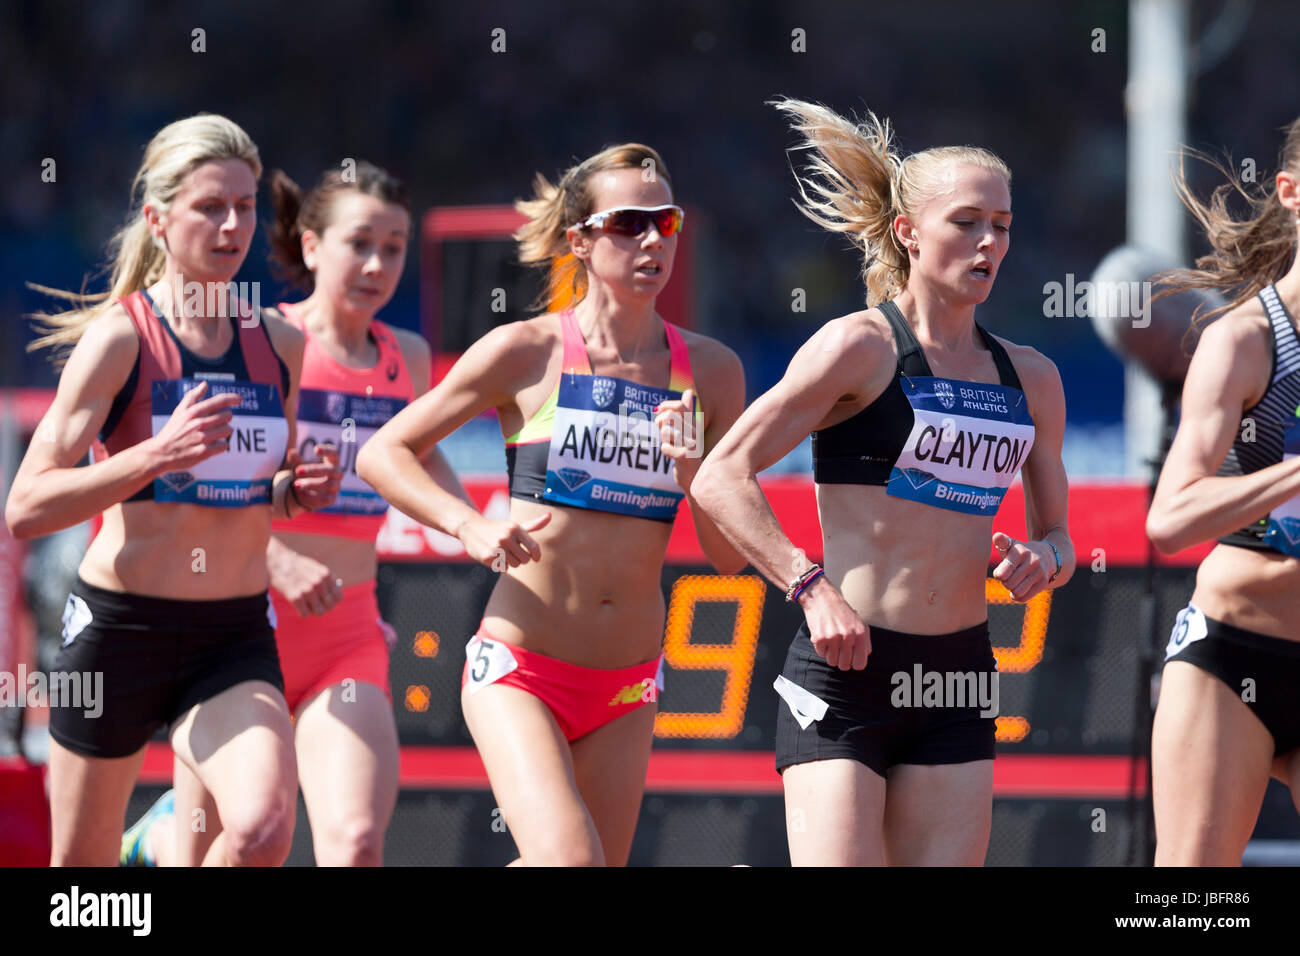 Jessica ANDREWS, Emma CLAYTON competing in the 5000m Women's at the 2016 IAAF Diamond League, Alexander Stadium, - Stock Image